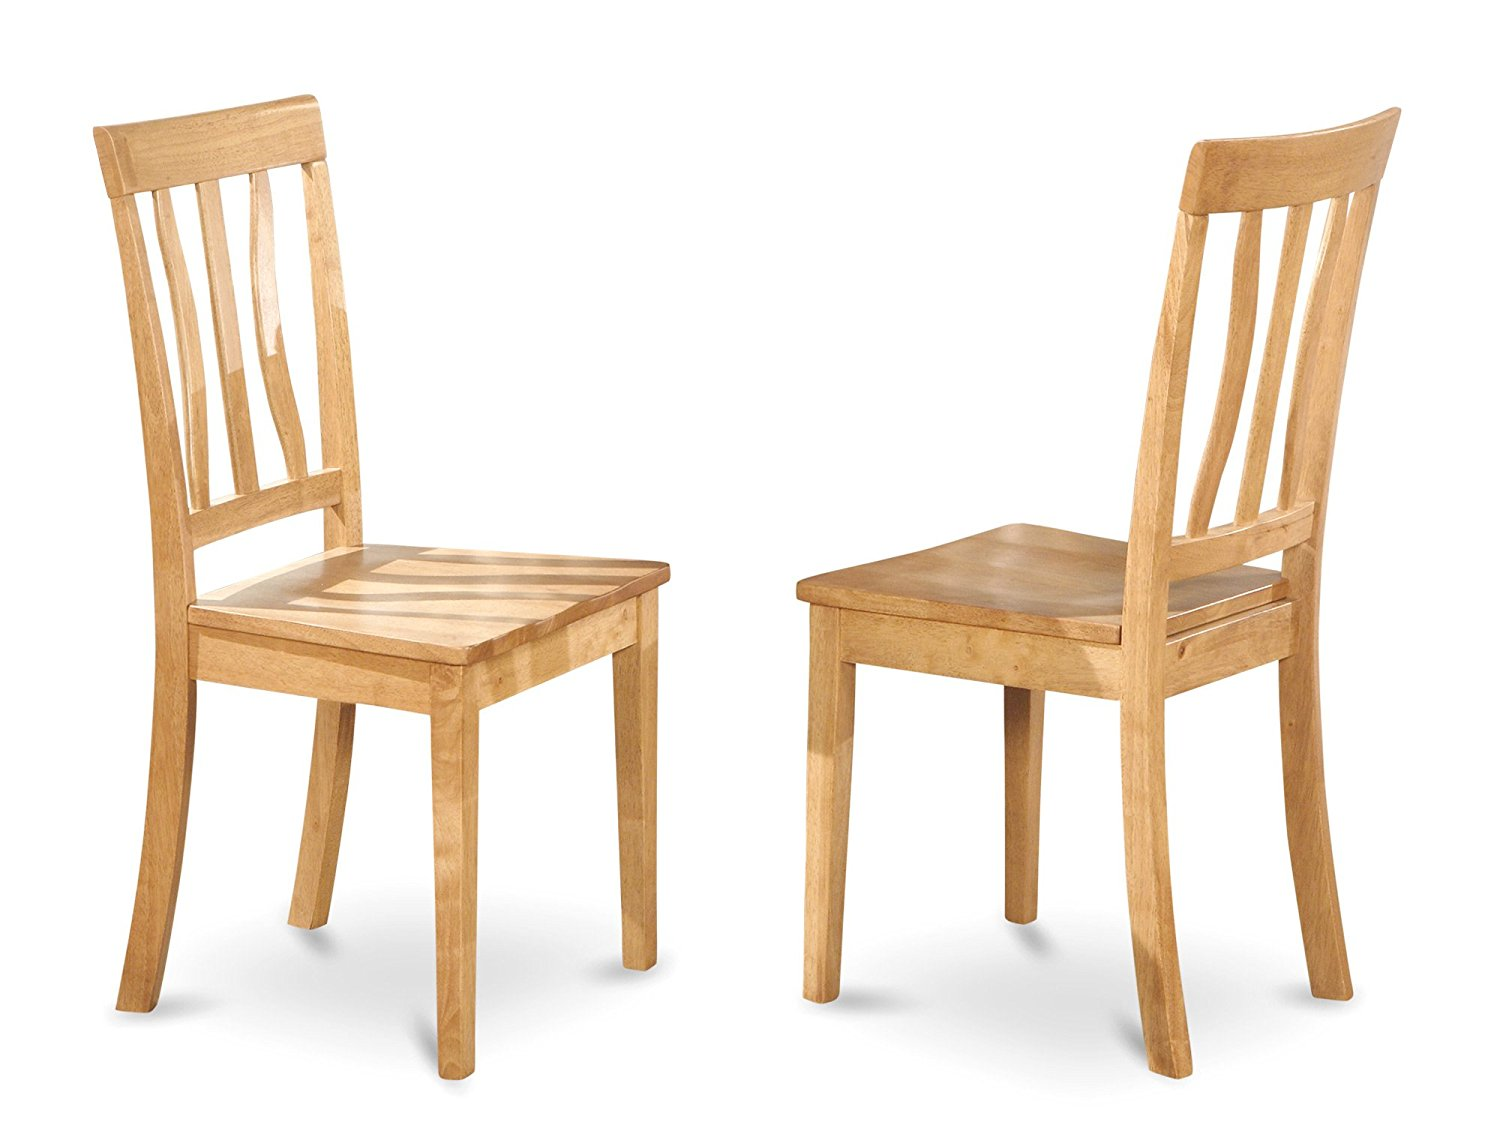 East West Furniture ANC-Oak-W Kitchen/Dining Chair Set with Wood Seat, Oak Finish, Set of 2